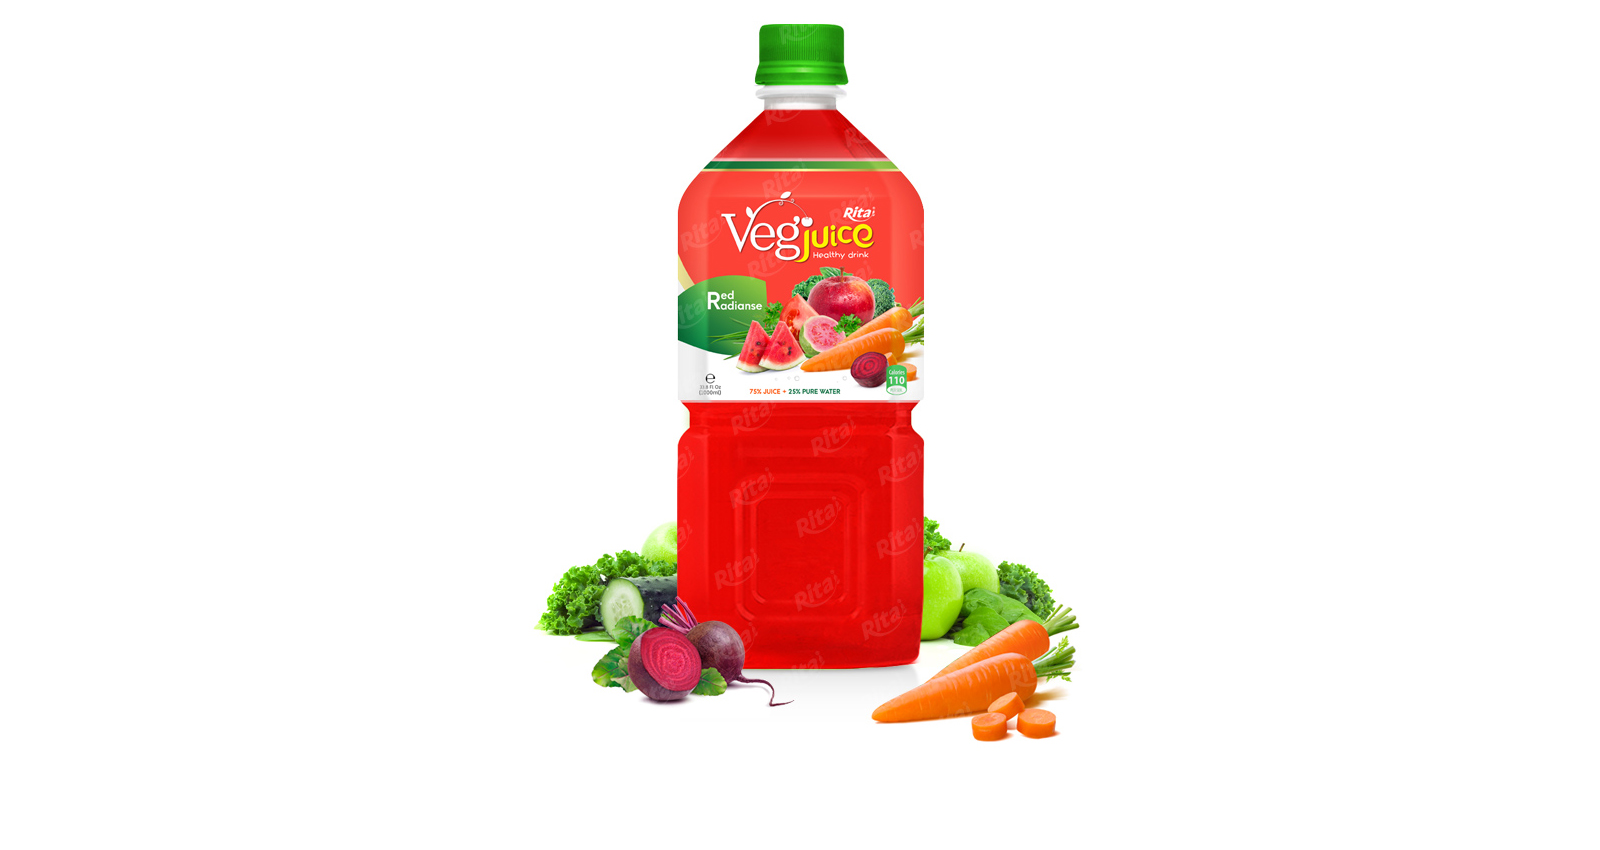 Rita vegetable radianse 1000ml pet bottle